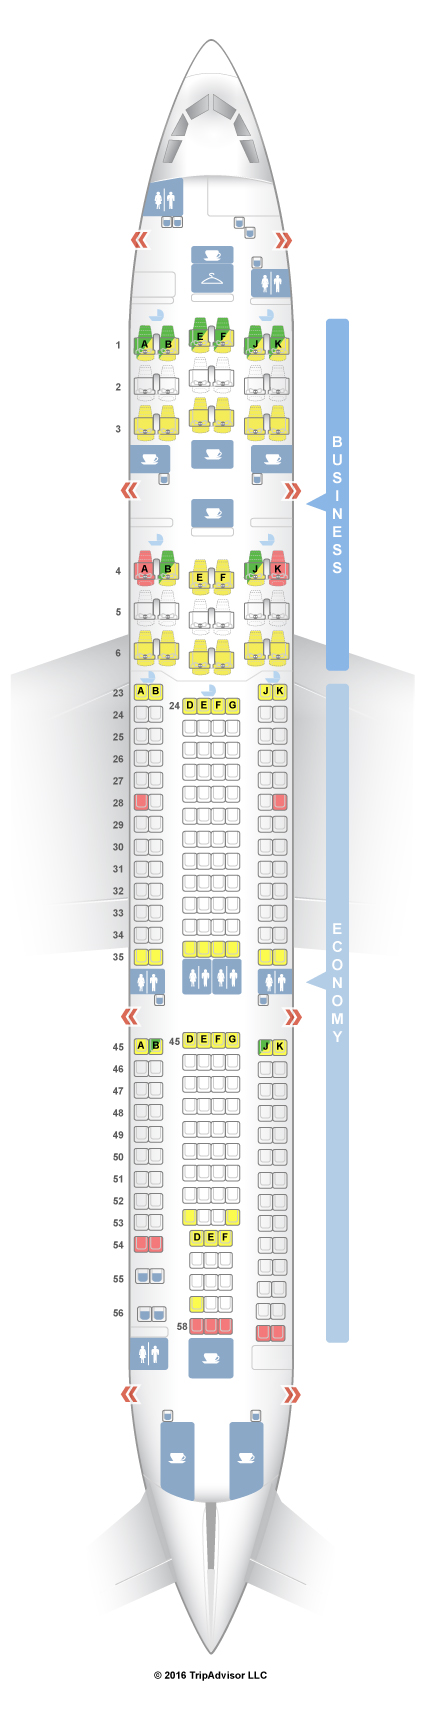 Airbus A380 800 Seating Chart Qantas | Wallseat.co